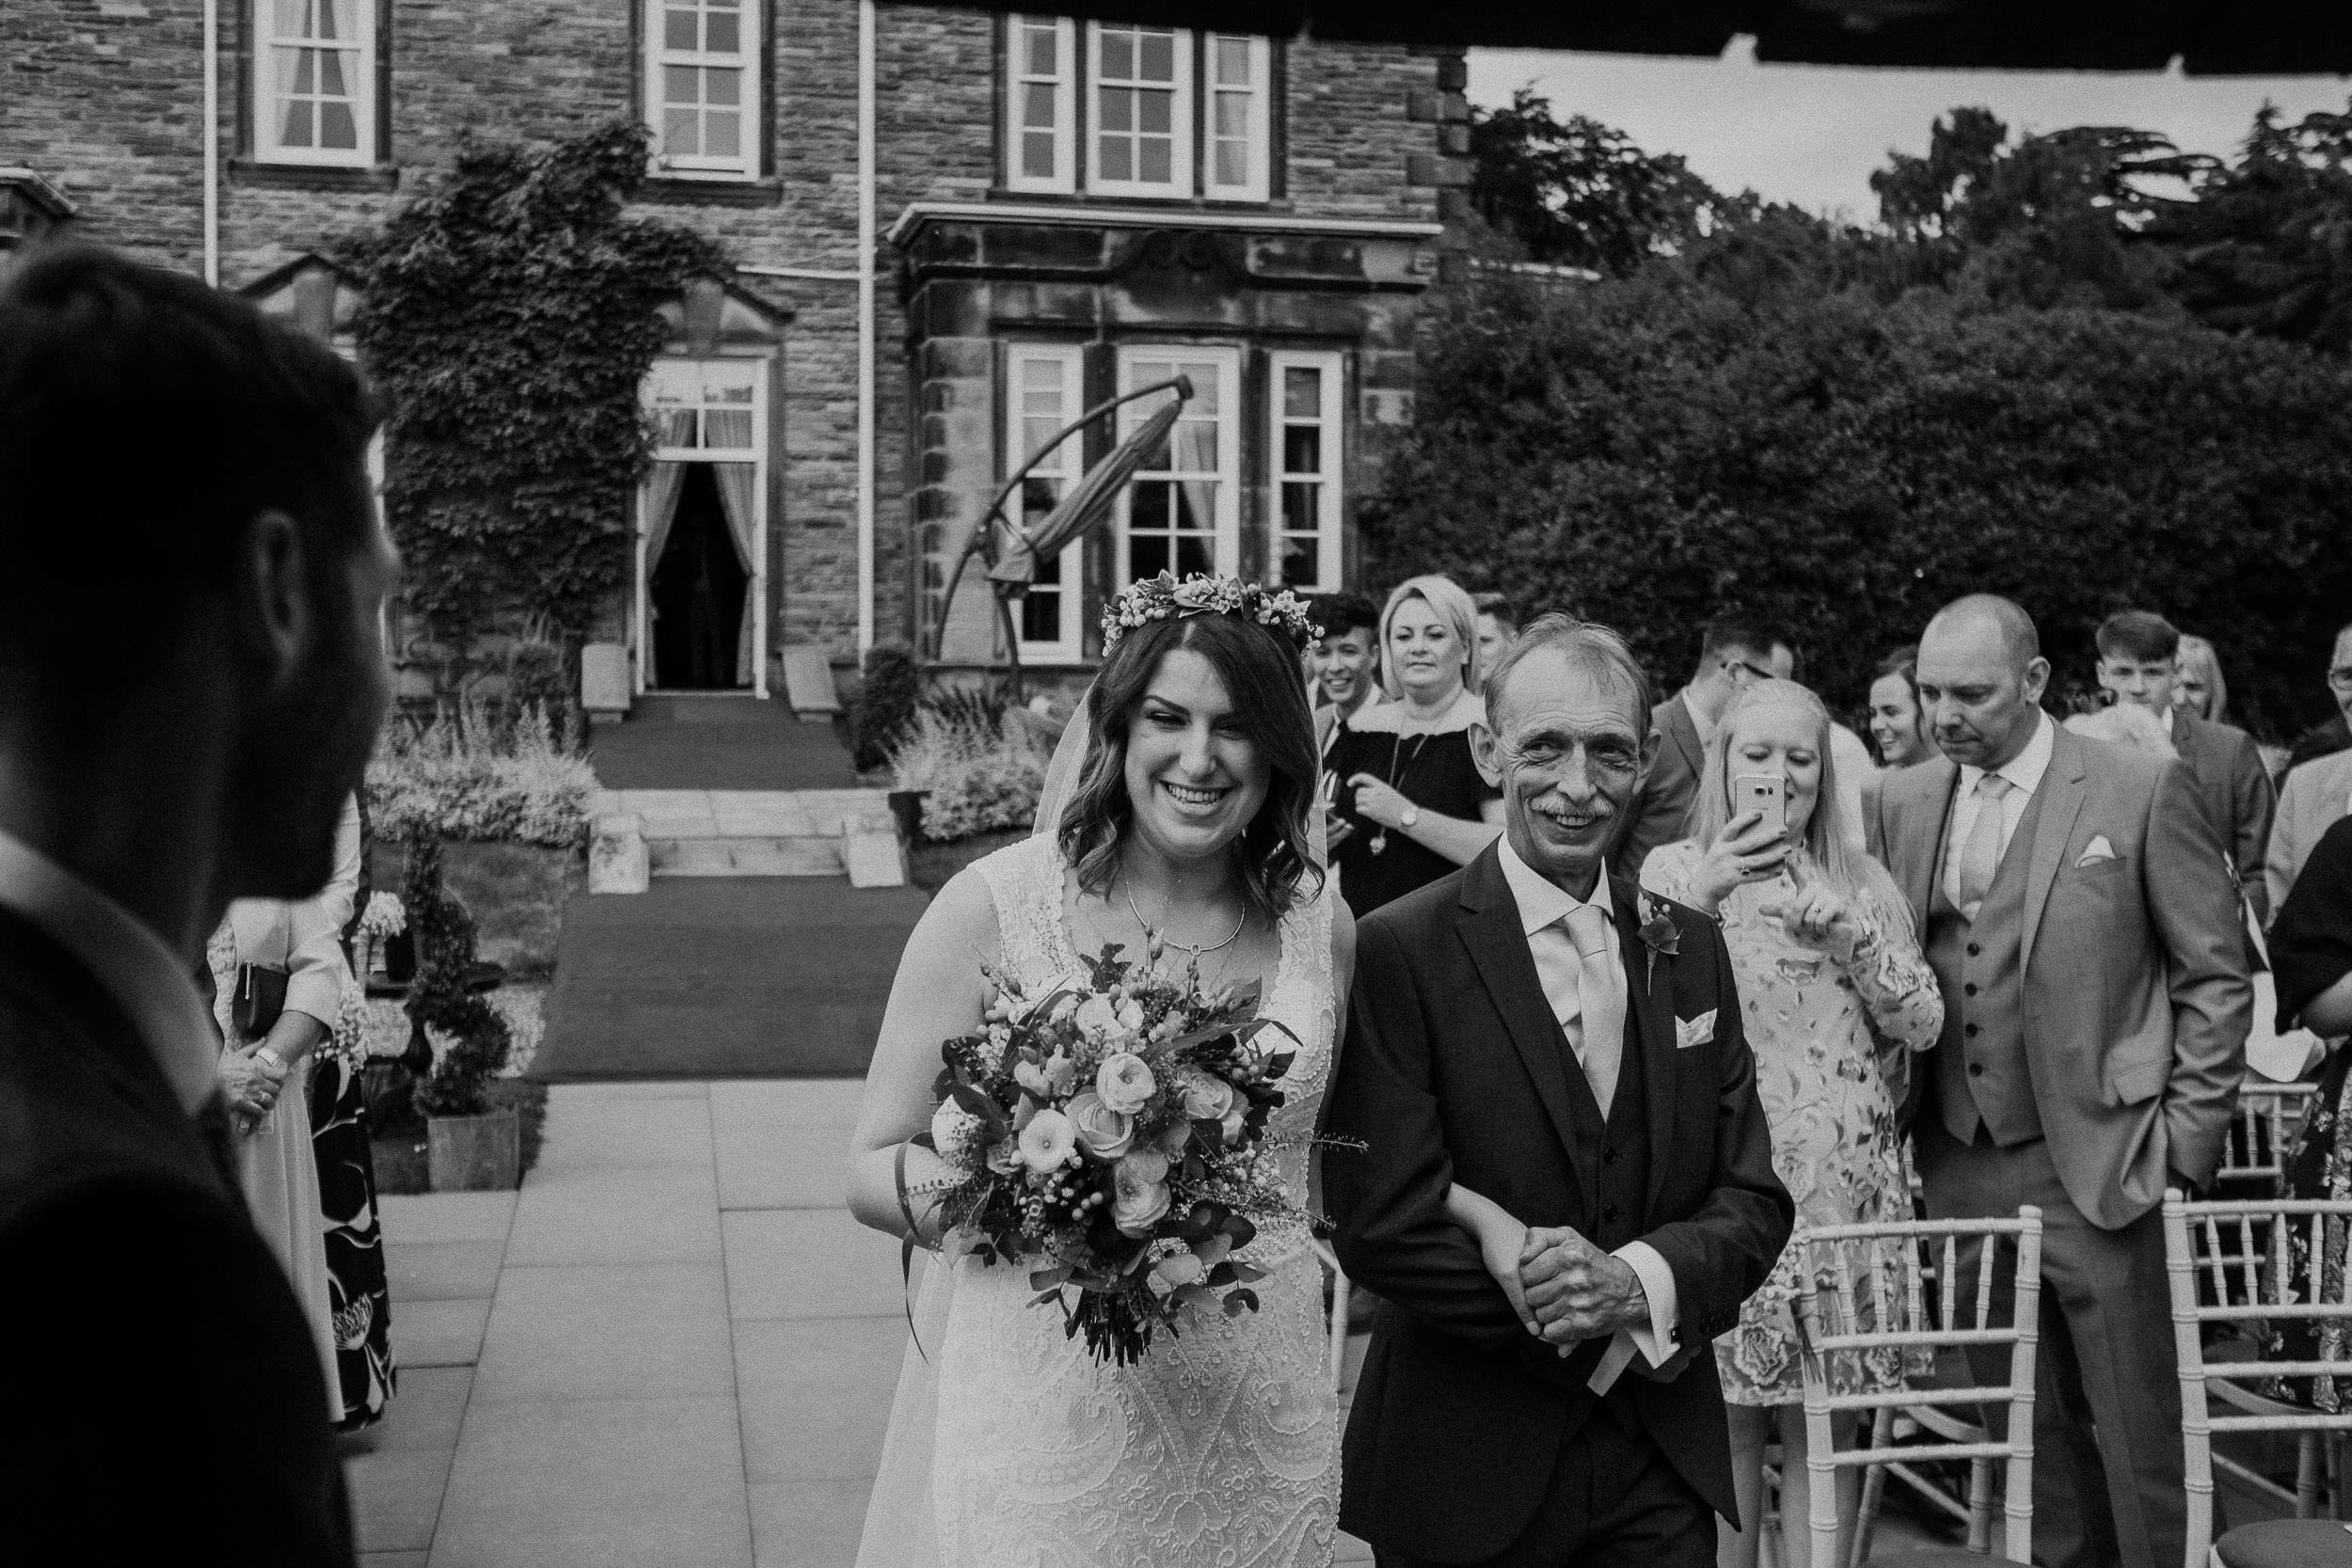 Black and white photo of bride and father of the bride smiling at the groom as they arrive at the wedding ceremony